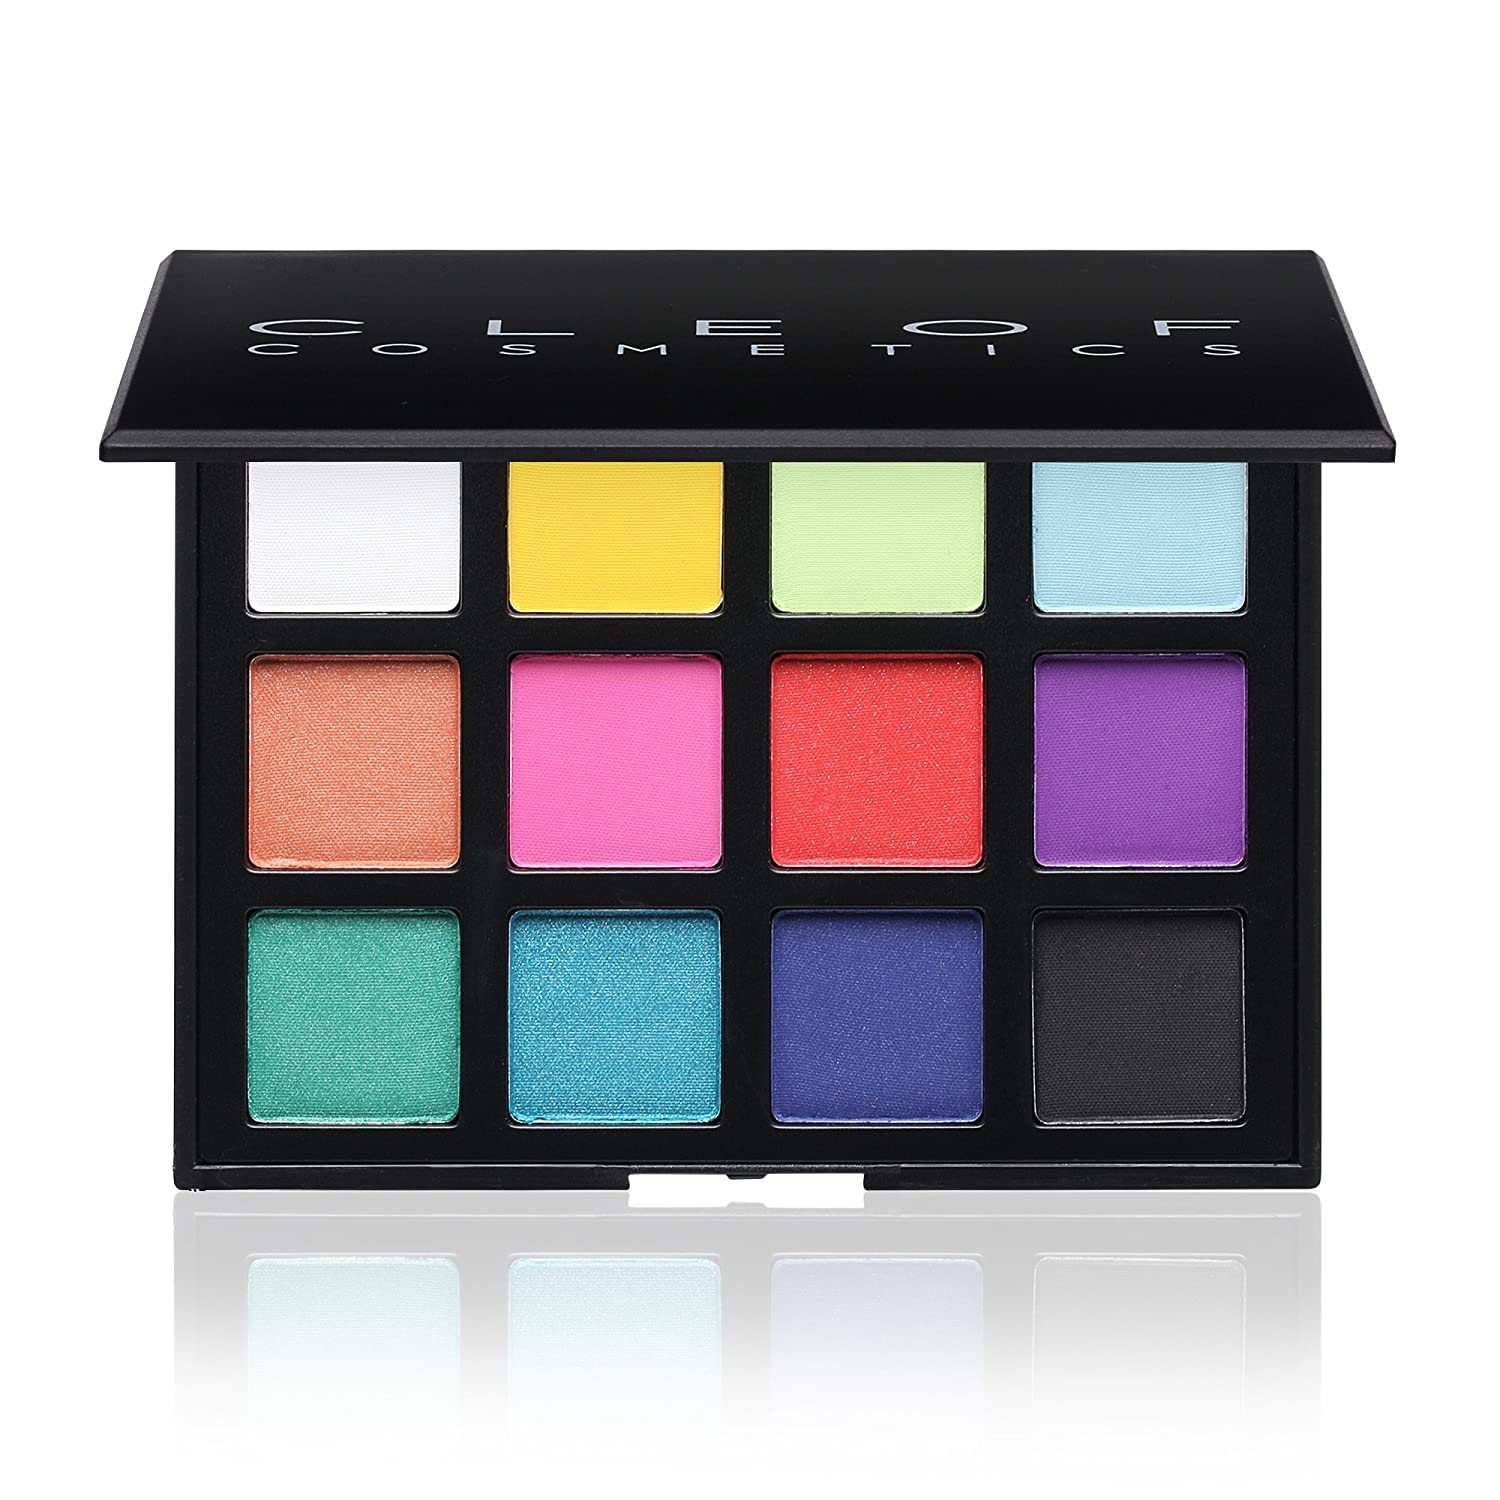 Professional Eyeshadow Palette Makeup- 12 Colors- Highly Pigmented Bright and Bold Colorful Matte & Shimmer Shades By Cleof Cosmetics